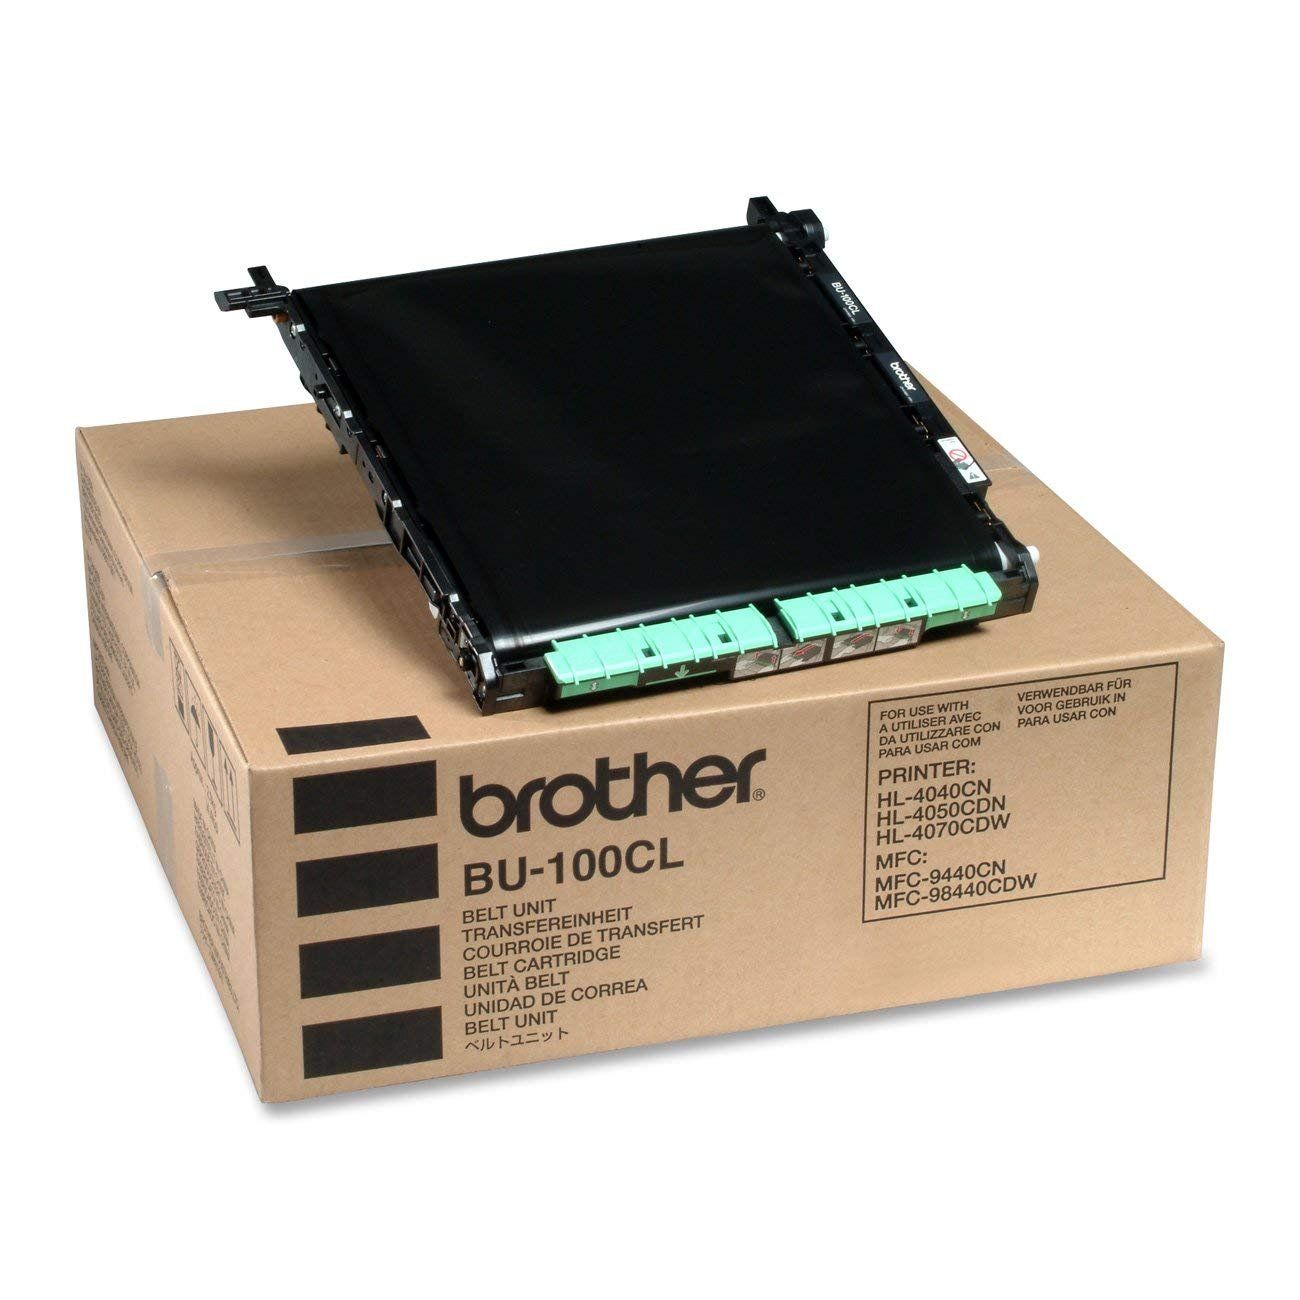 Brother BU100CL (BU-100CL) Belt Unit for HL-4070CDW, MFC-9450CDN BRTBU100CL